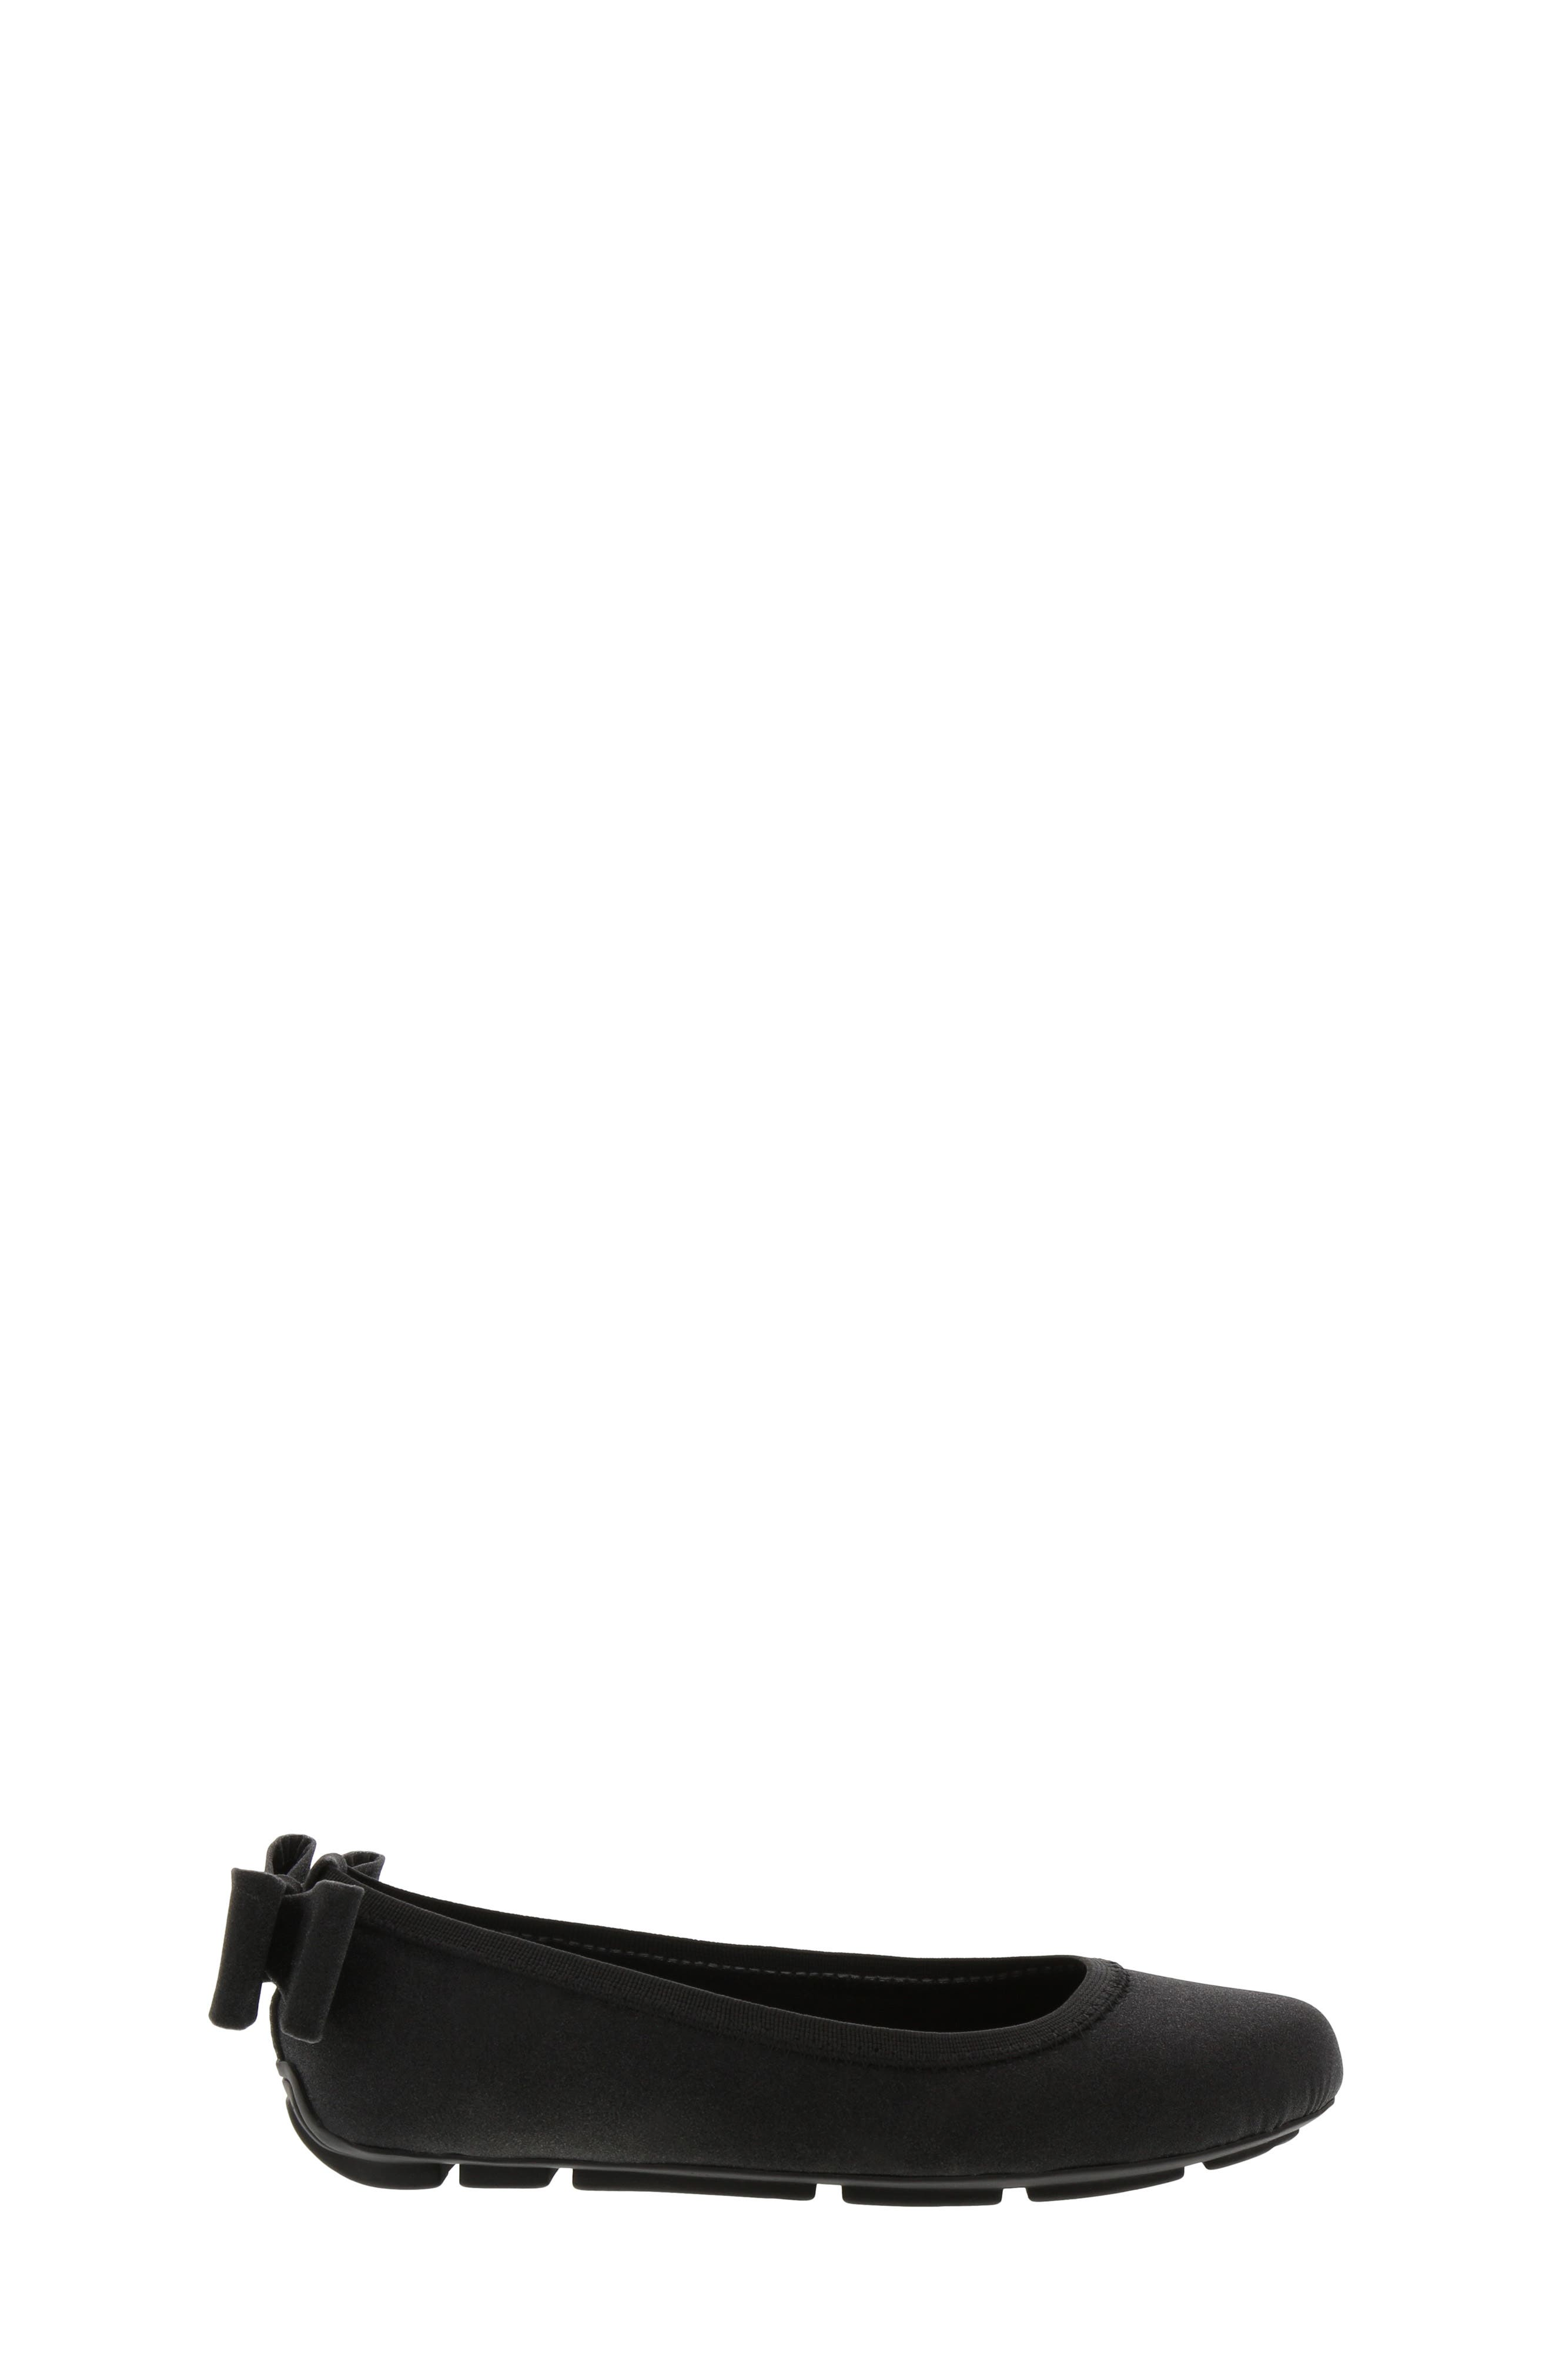 MICHAEL MICHAEL KORS,                             Rover Ellie Flat,                             Alternate thumbnail 3, color,                             BLACK